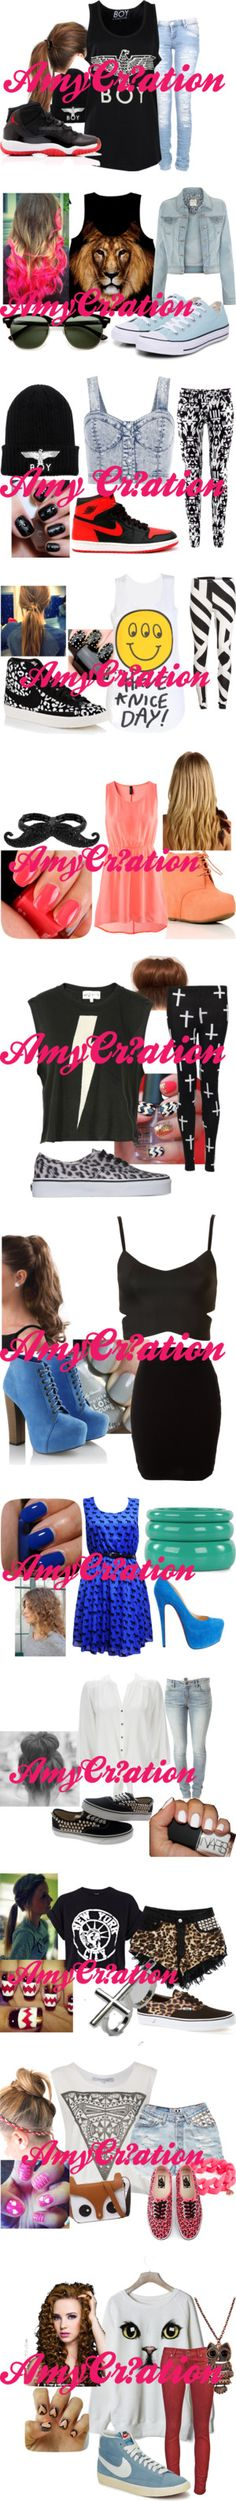 """""""Swag clothes fiction"""" by bbshouww-terry ❤ liked on Polyvore"""